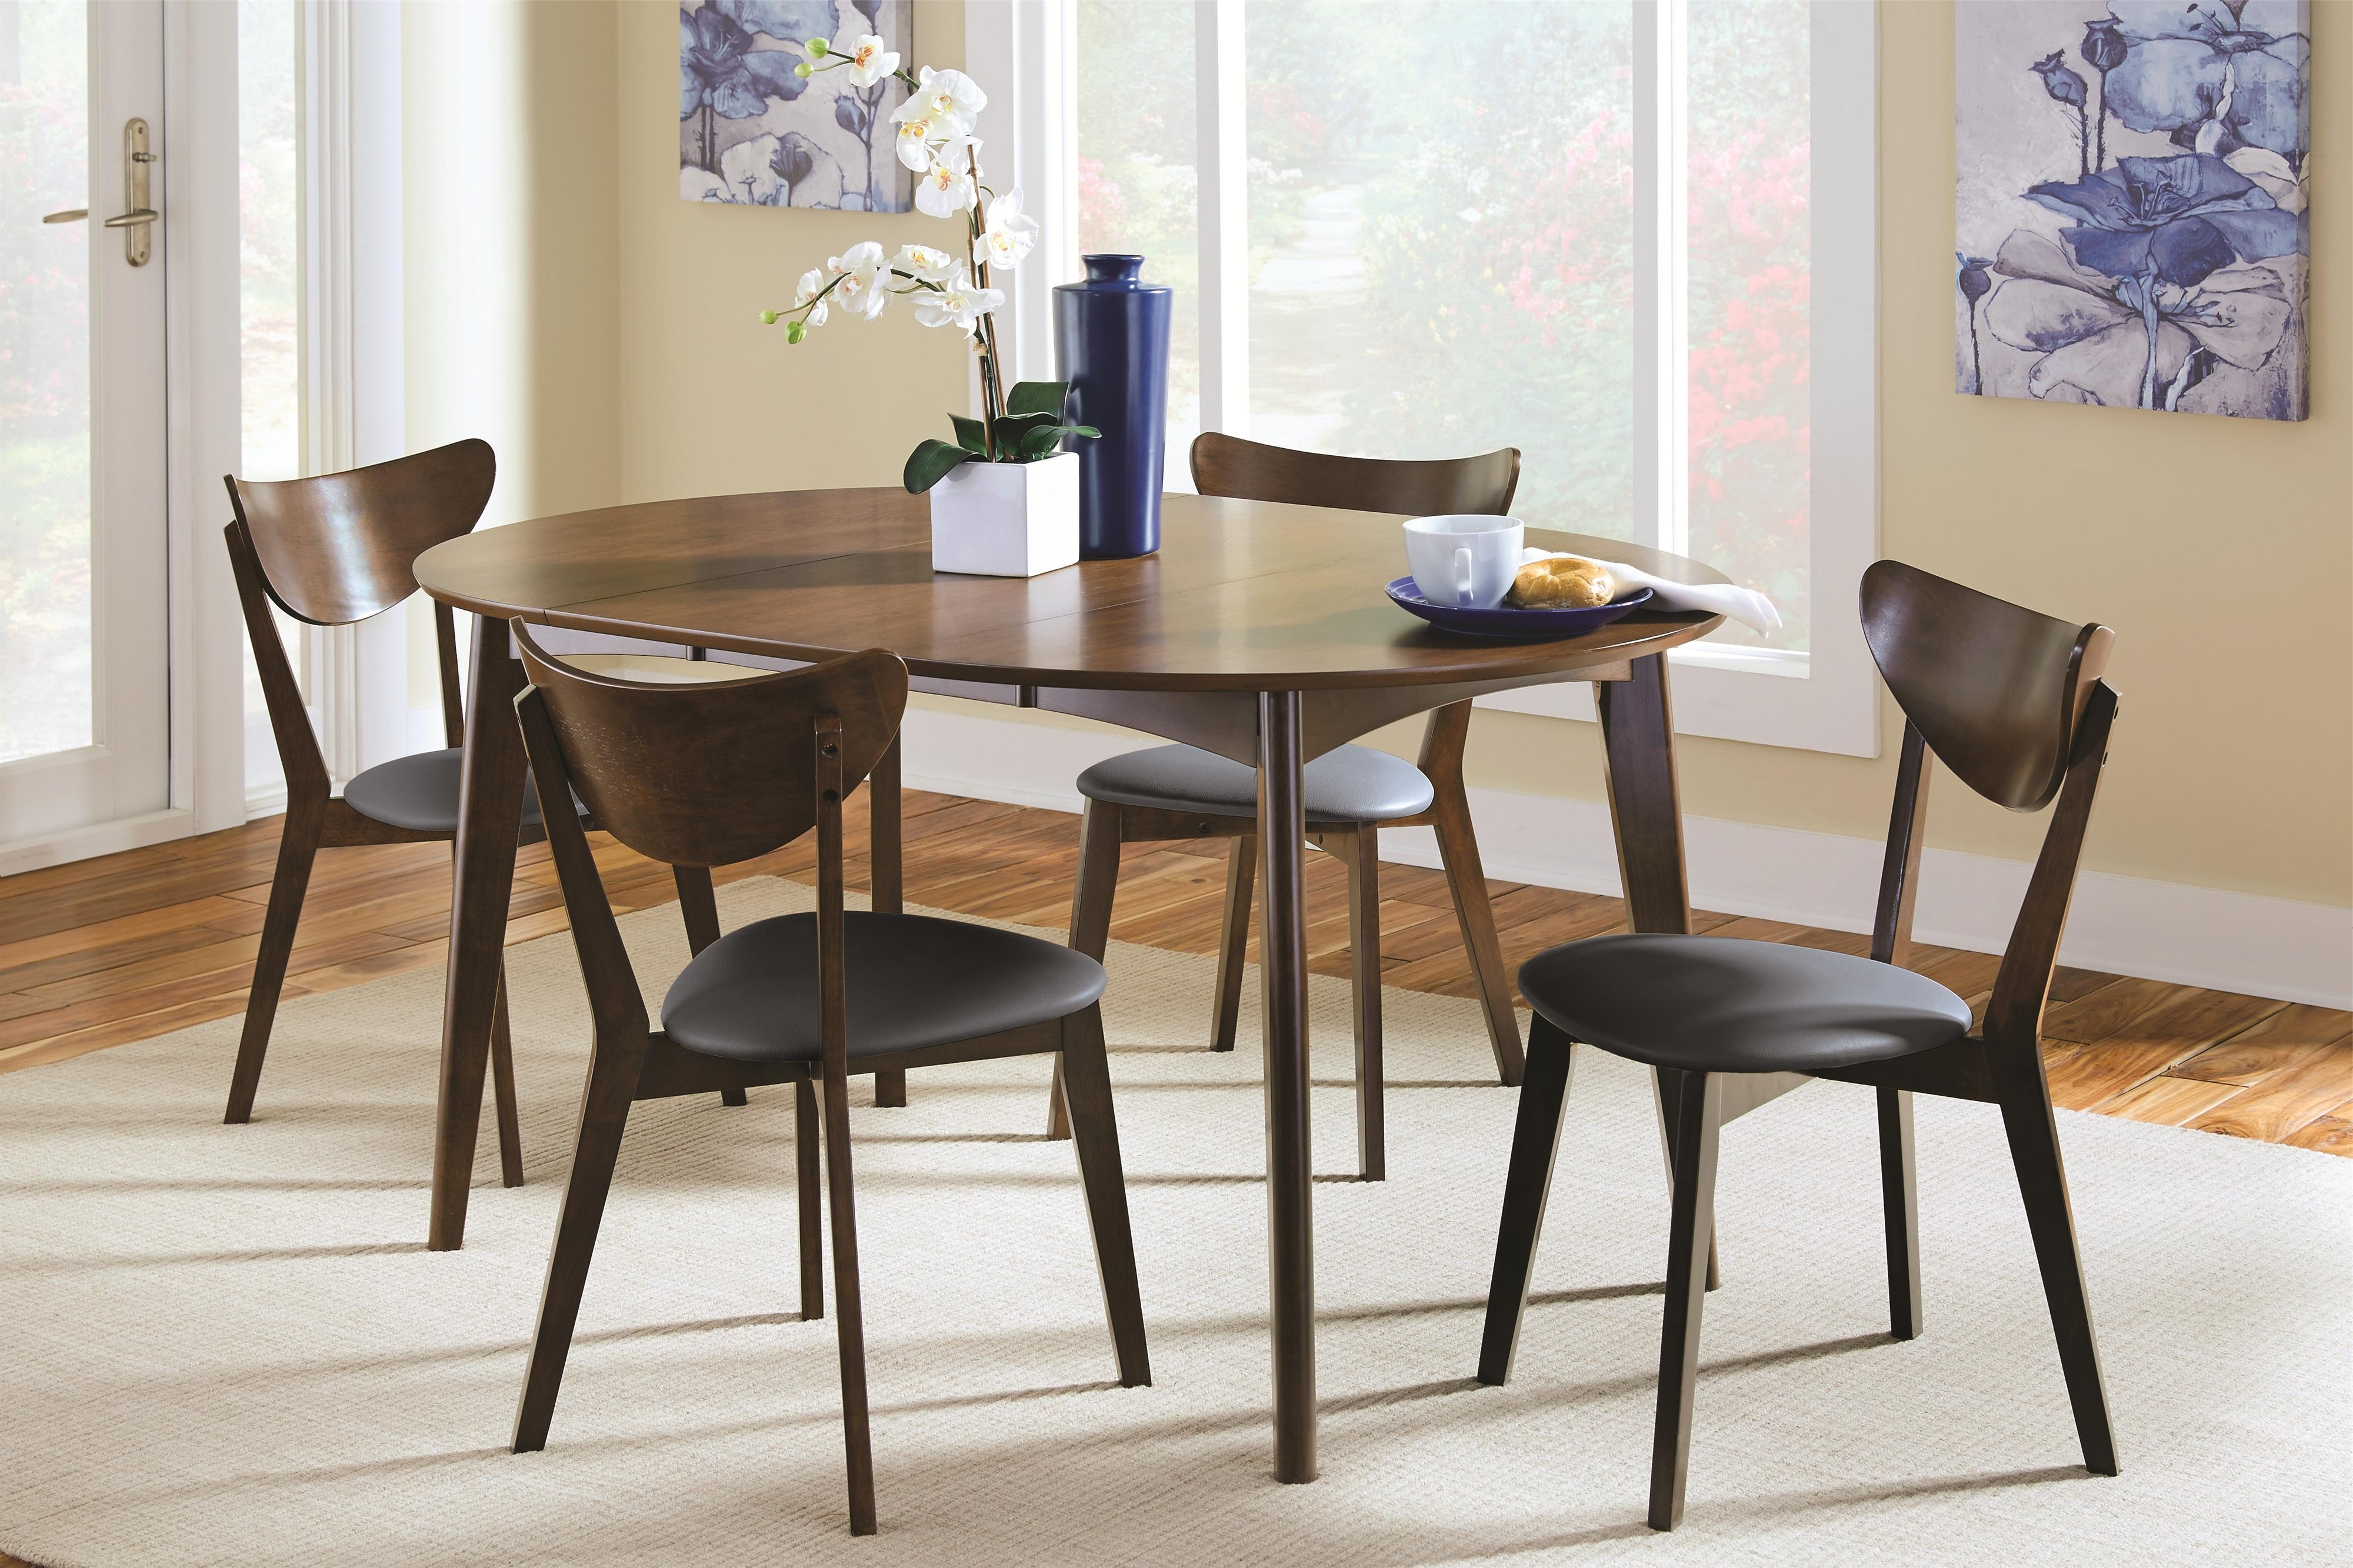 Modern Dining Room Furniture Pertaining To Most Current Coaster Malone Mid Century Modern 5 Piece Solid Wood Dining Set (View 9 of 25)